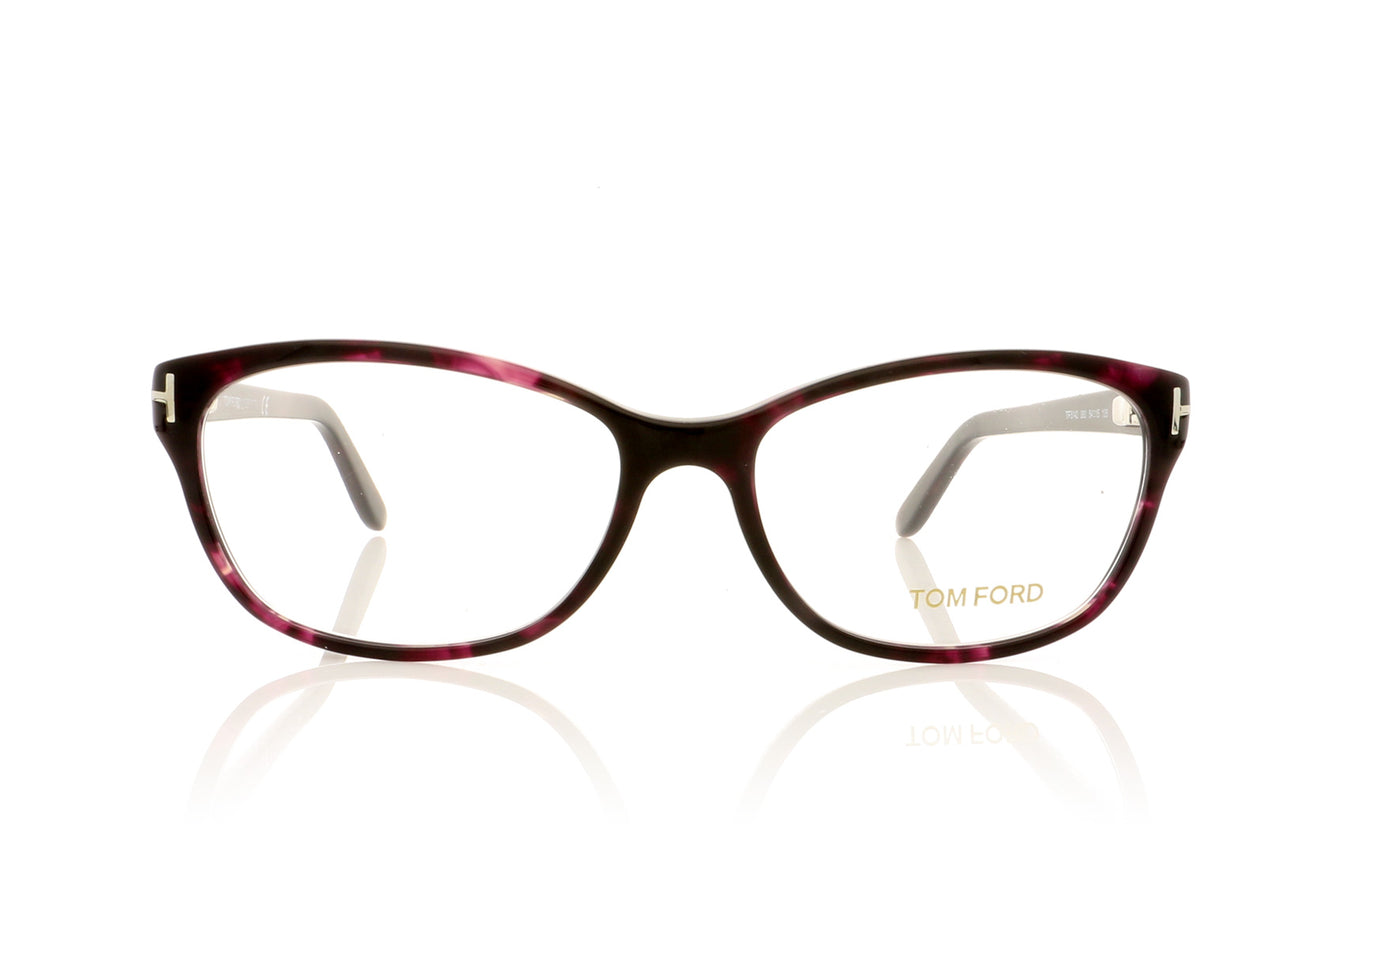 a5434901eb Tom Ford TF5142 050 Dark Brown Glasses